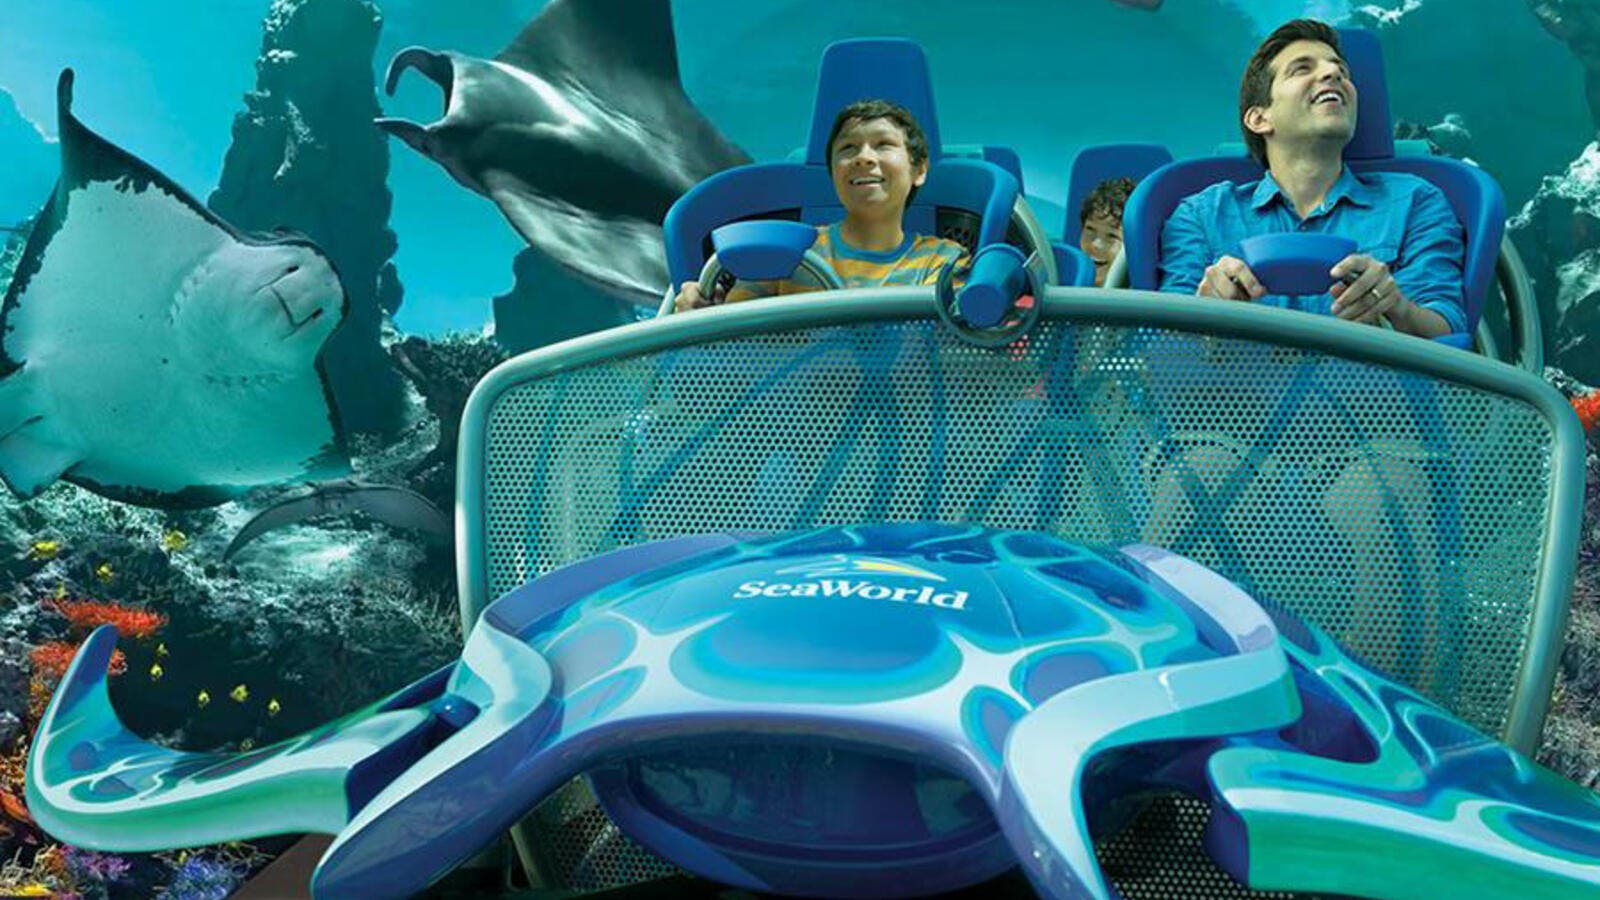 SeaWorld Abu Dhabi will be the company's first new park without orcas, and will integrate up-close animal experiences, mega attractions and an aquarium. (SeaWorld)